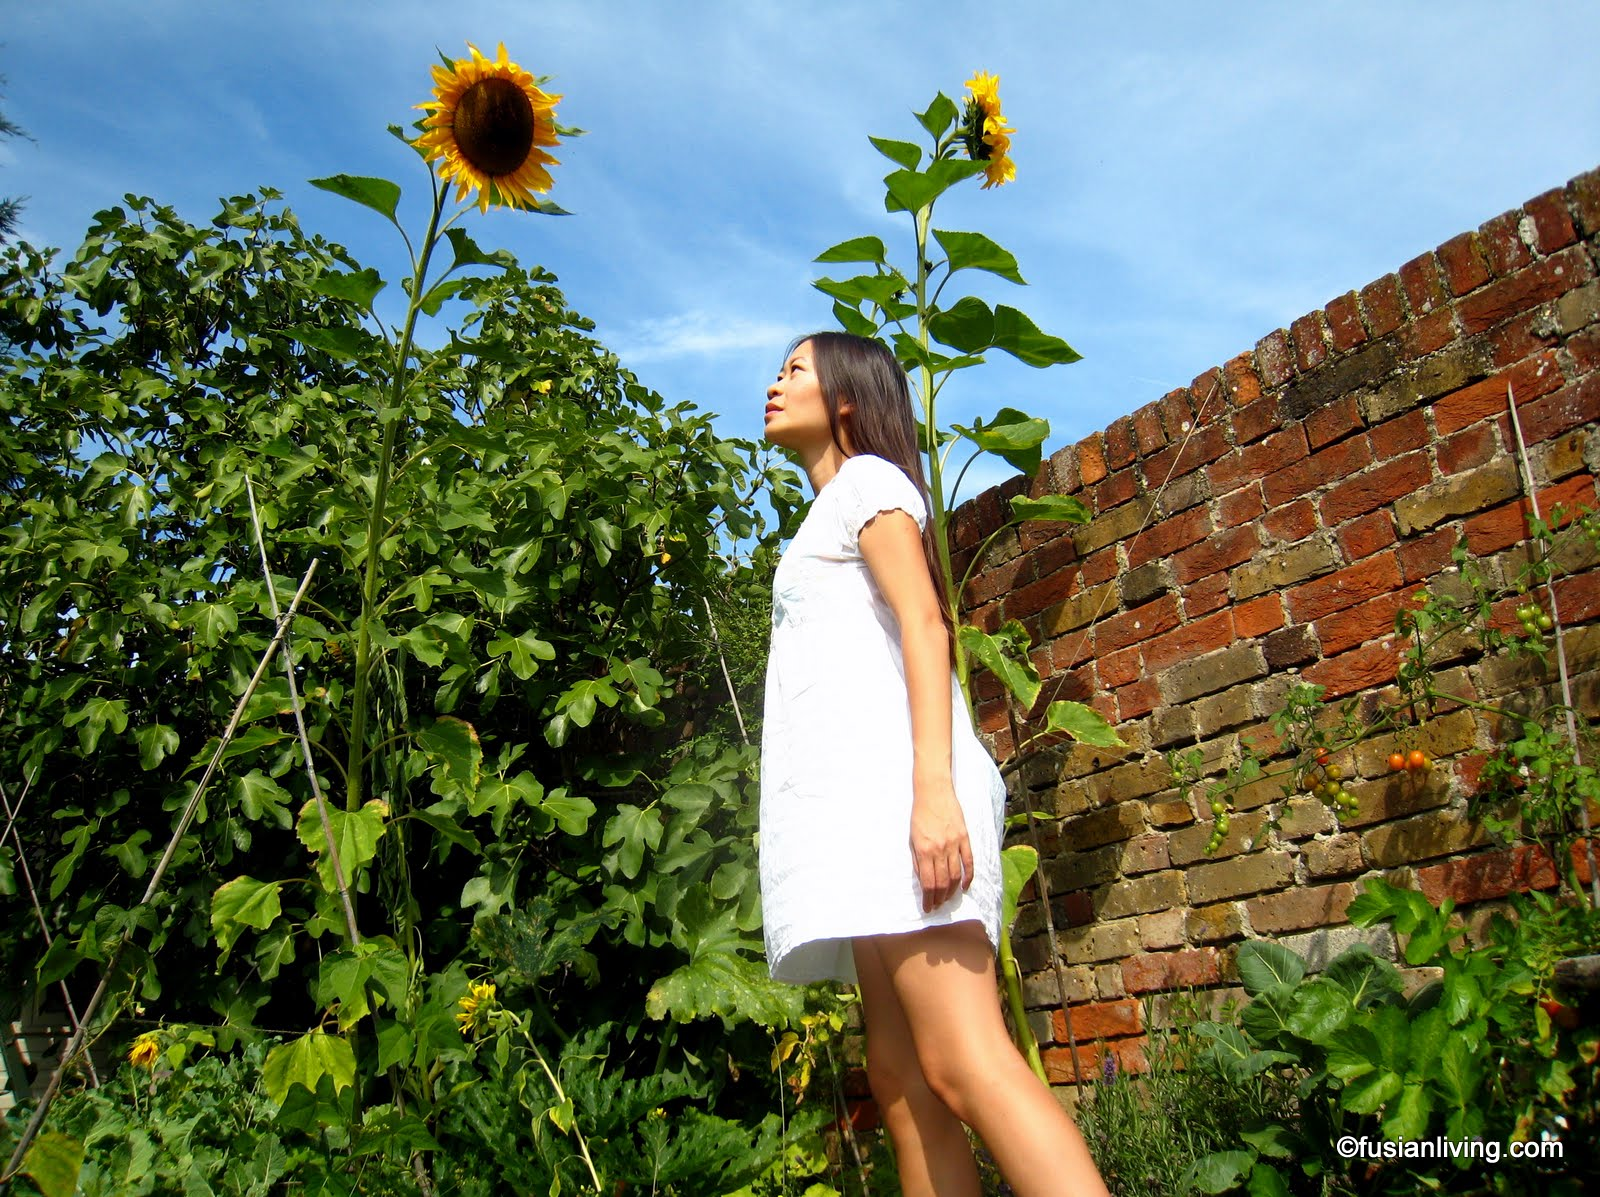 Thumbelina And Her Giant Sunflowers